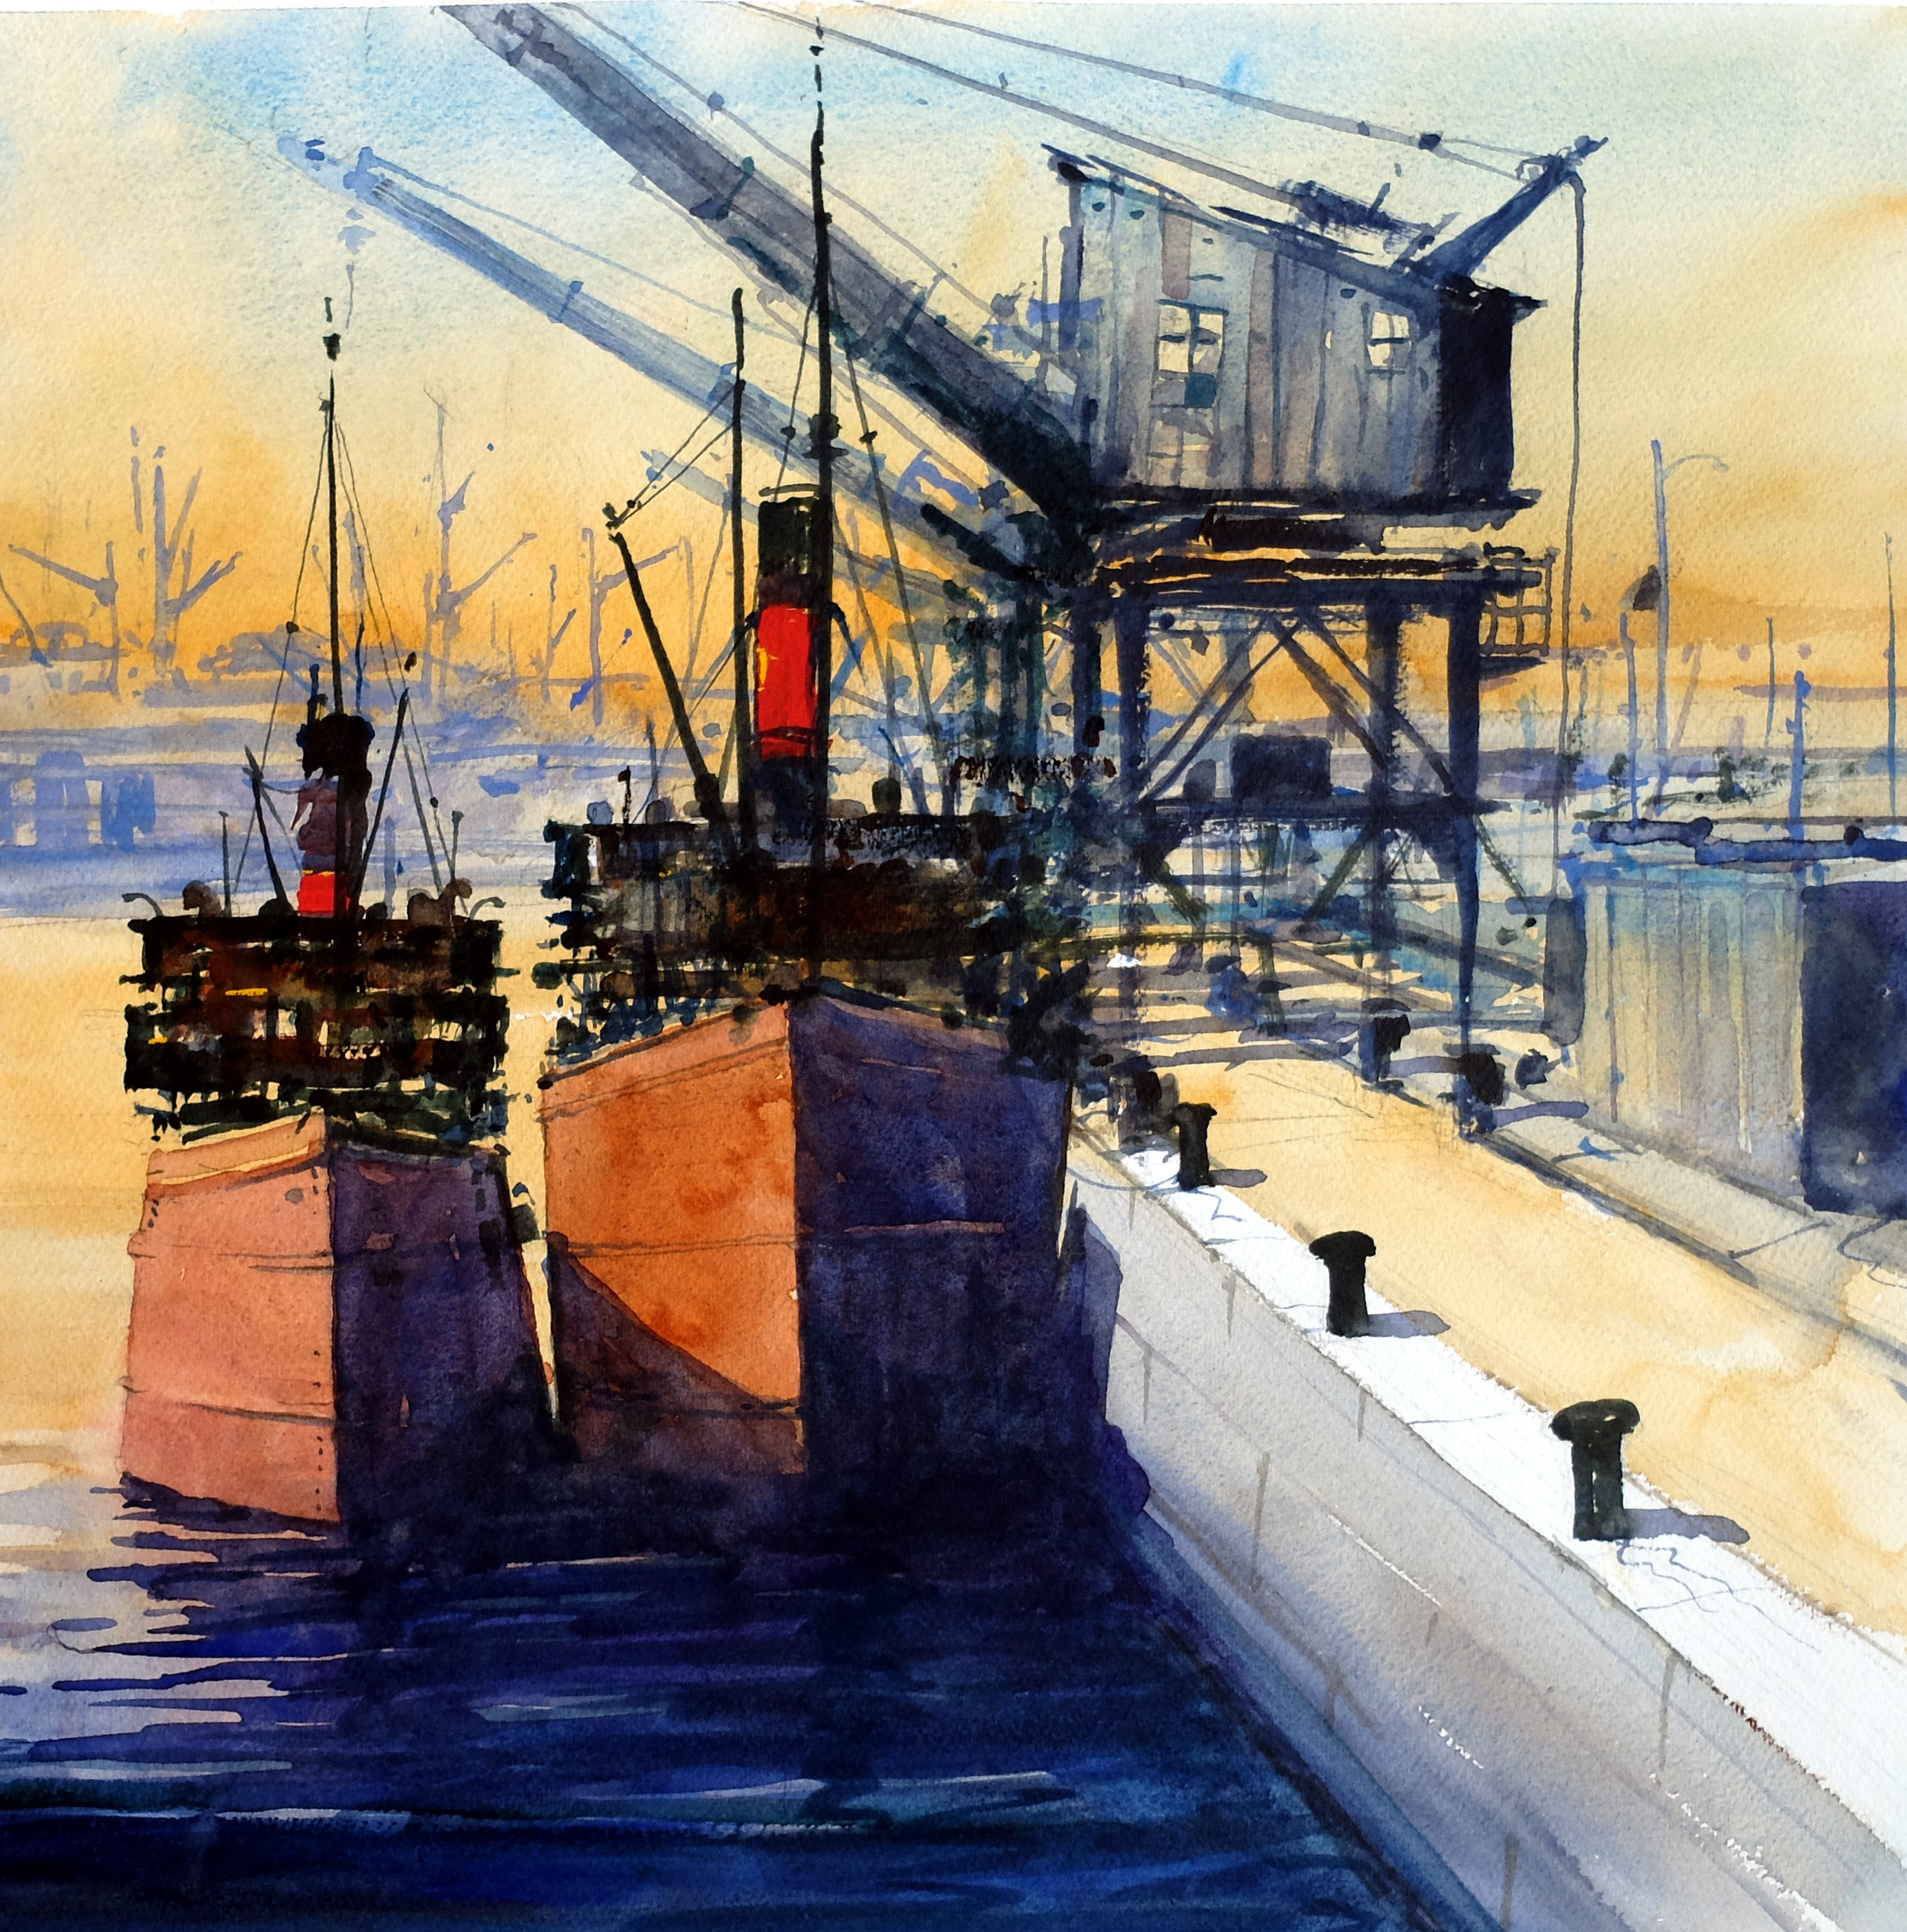 Clyde Puffers . Original watercolour by Martin Oates 48 x 48 cm ** SALE PRICE £360** (was £480)